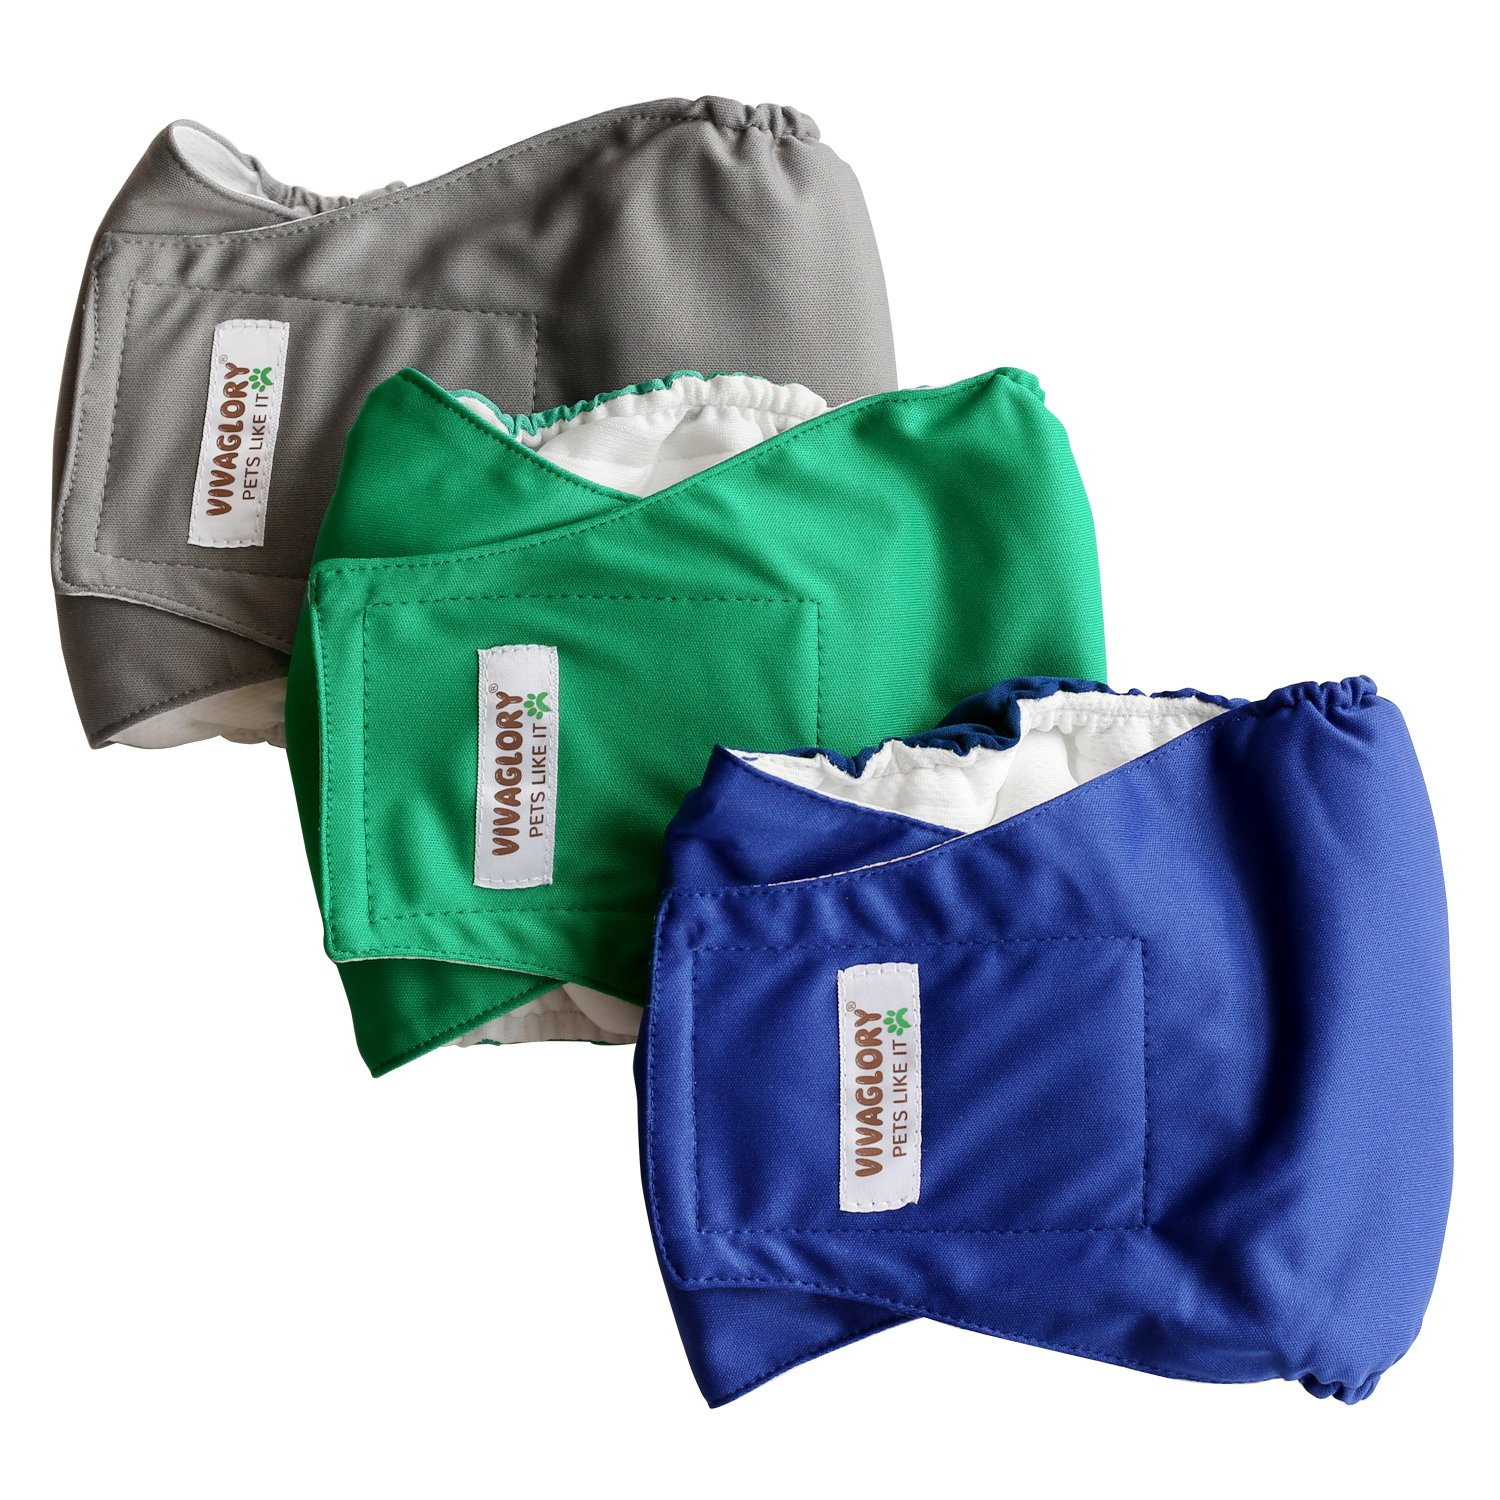 Vivaglory Dog Diapers Male, Reusable Washable Belly Wraps Doggy Puppy Panties, Pack of 3